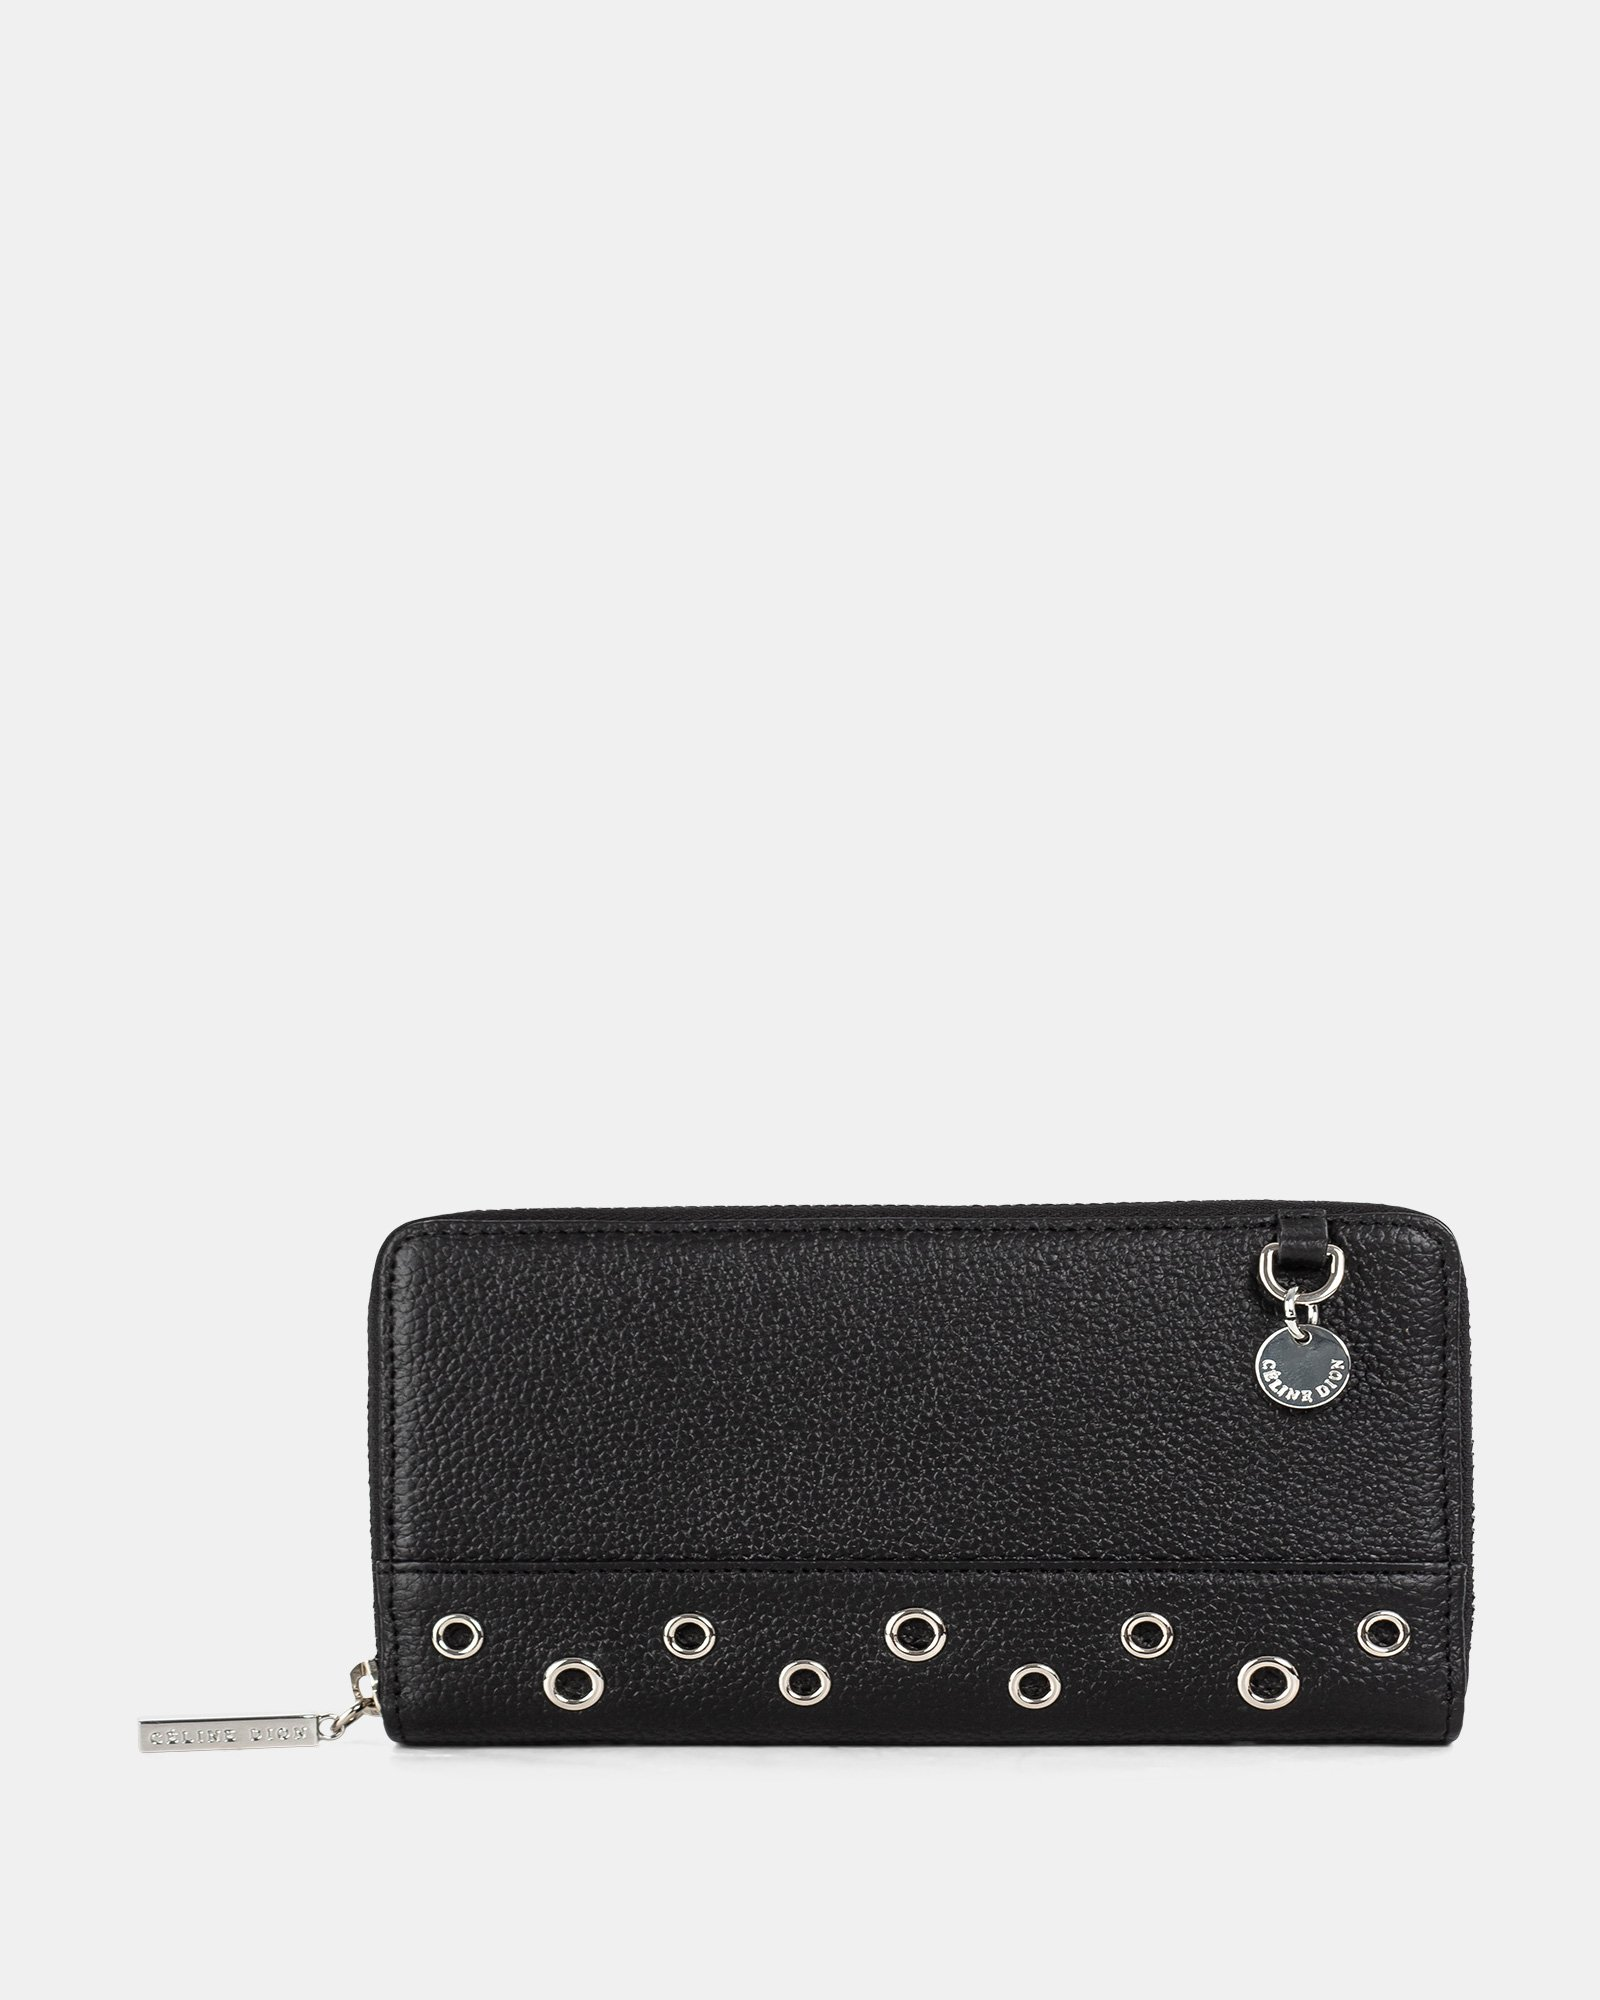 FALSETTO - LEATHER WALLET with Removable chain strap - BLACK - Céline Dion - Zoom